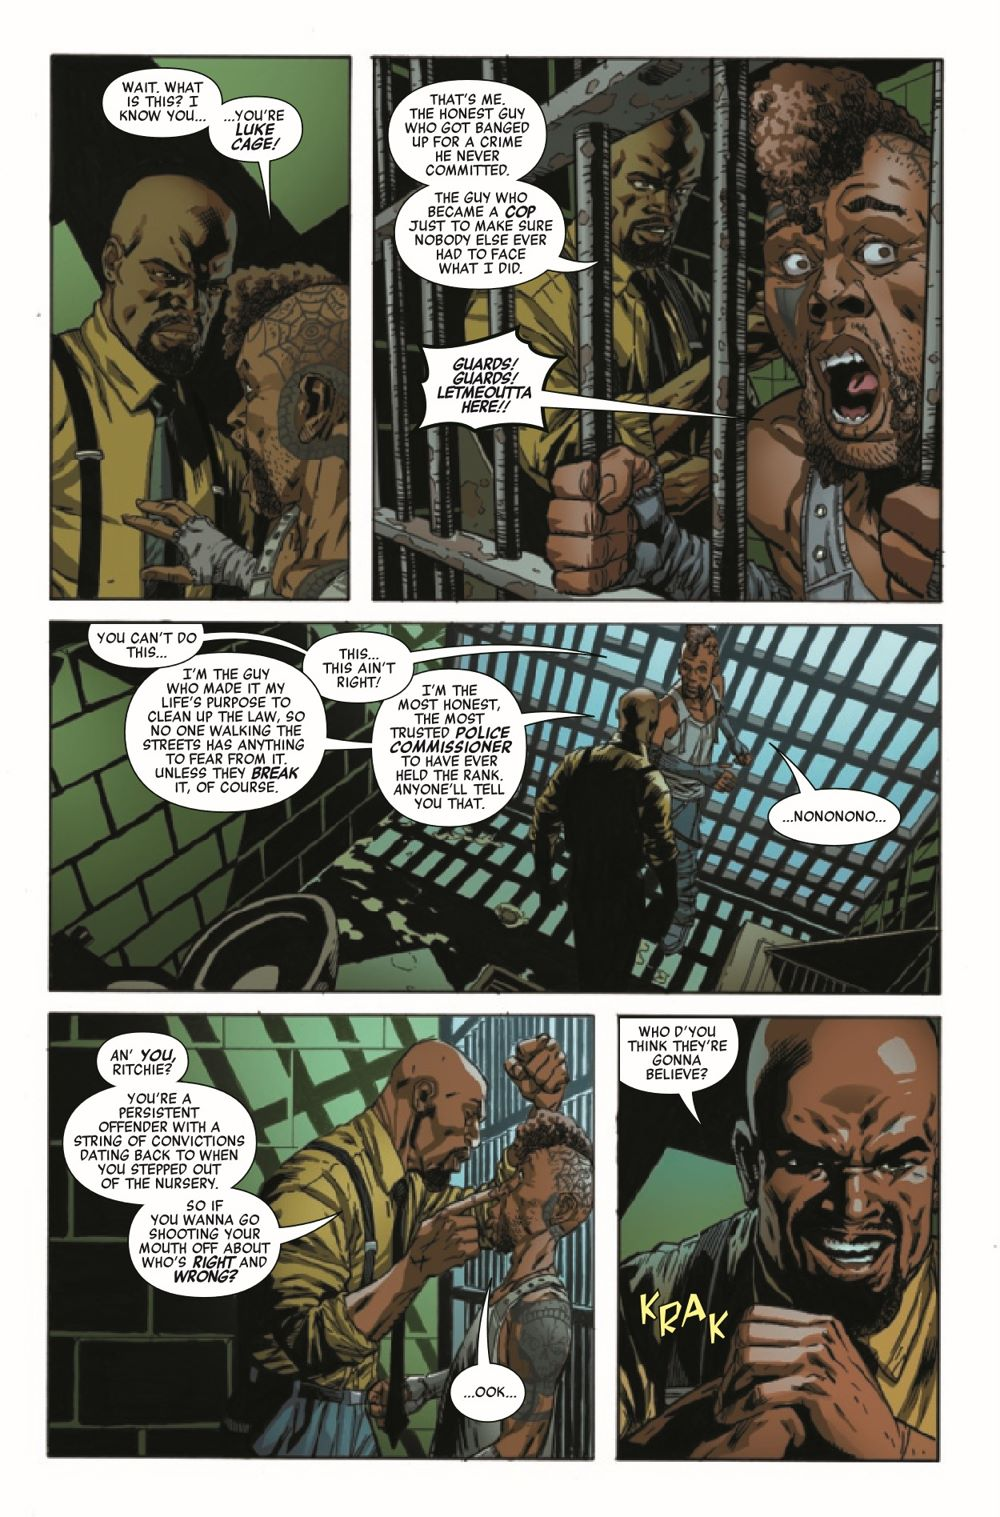 HRAMERIKNIGHTS2021001_Preview-6 ComicList Previews: HEROES REBORN AMERICAN KNIGHTS #1